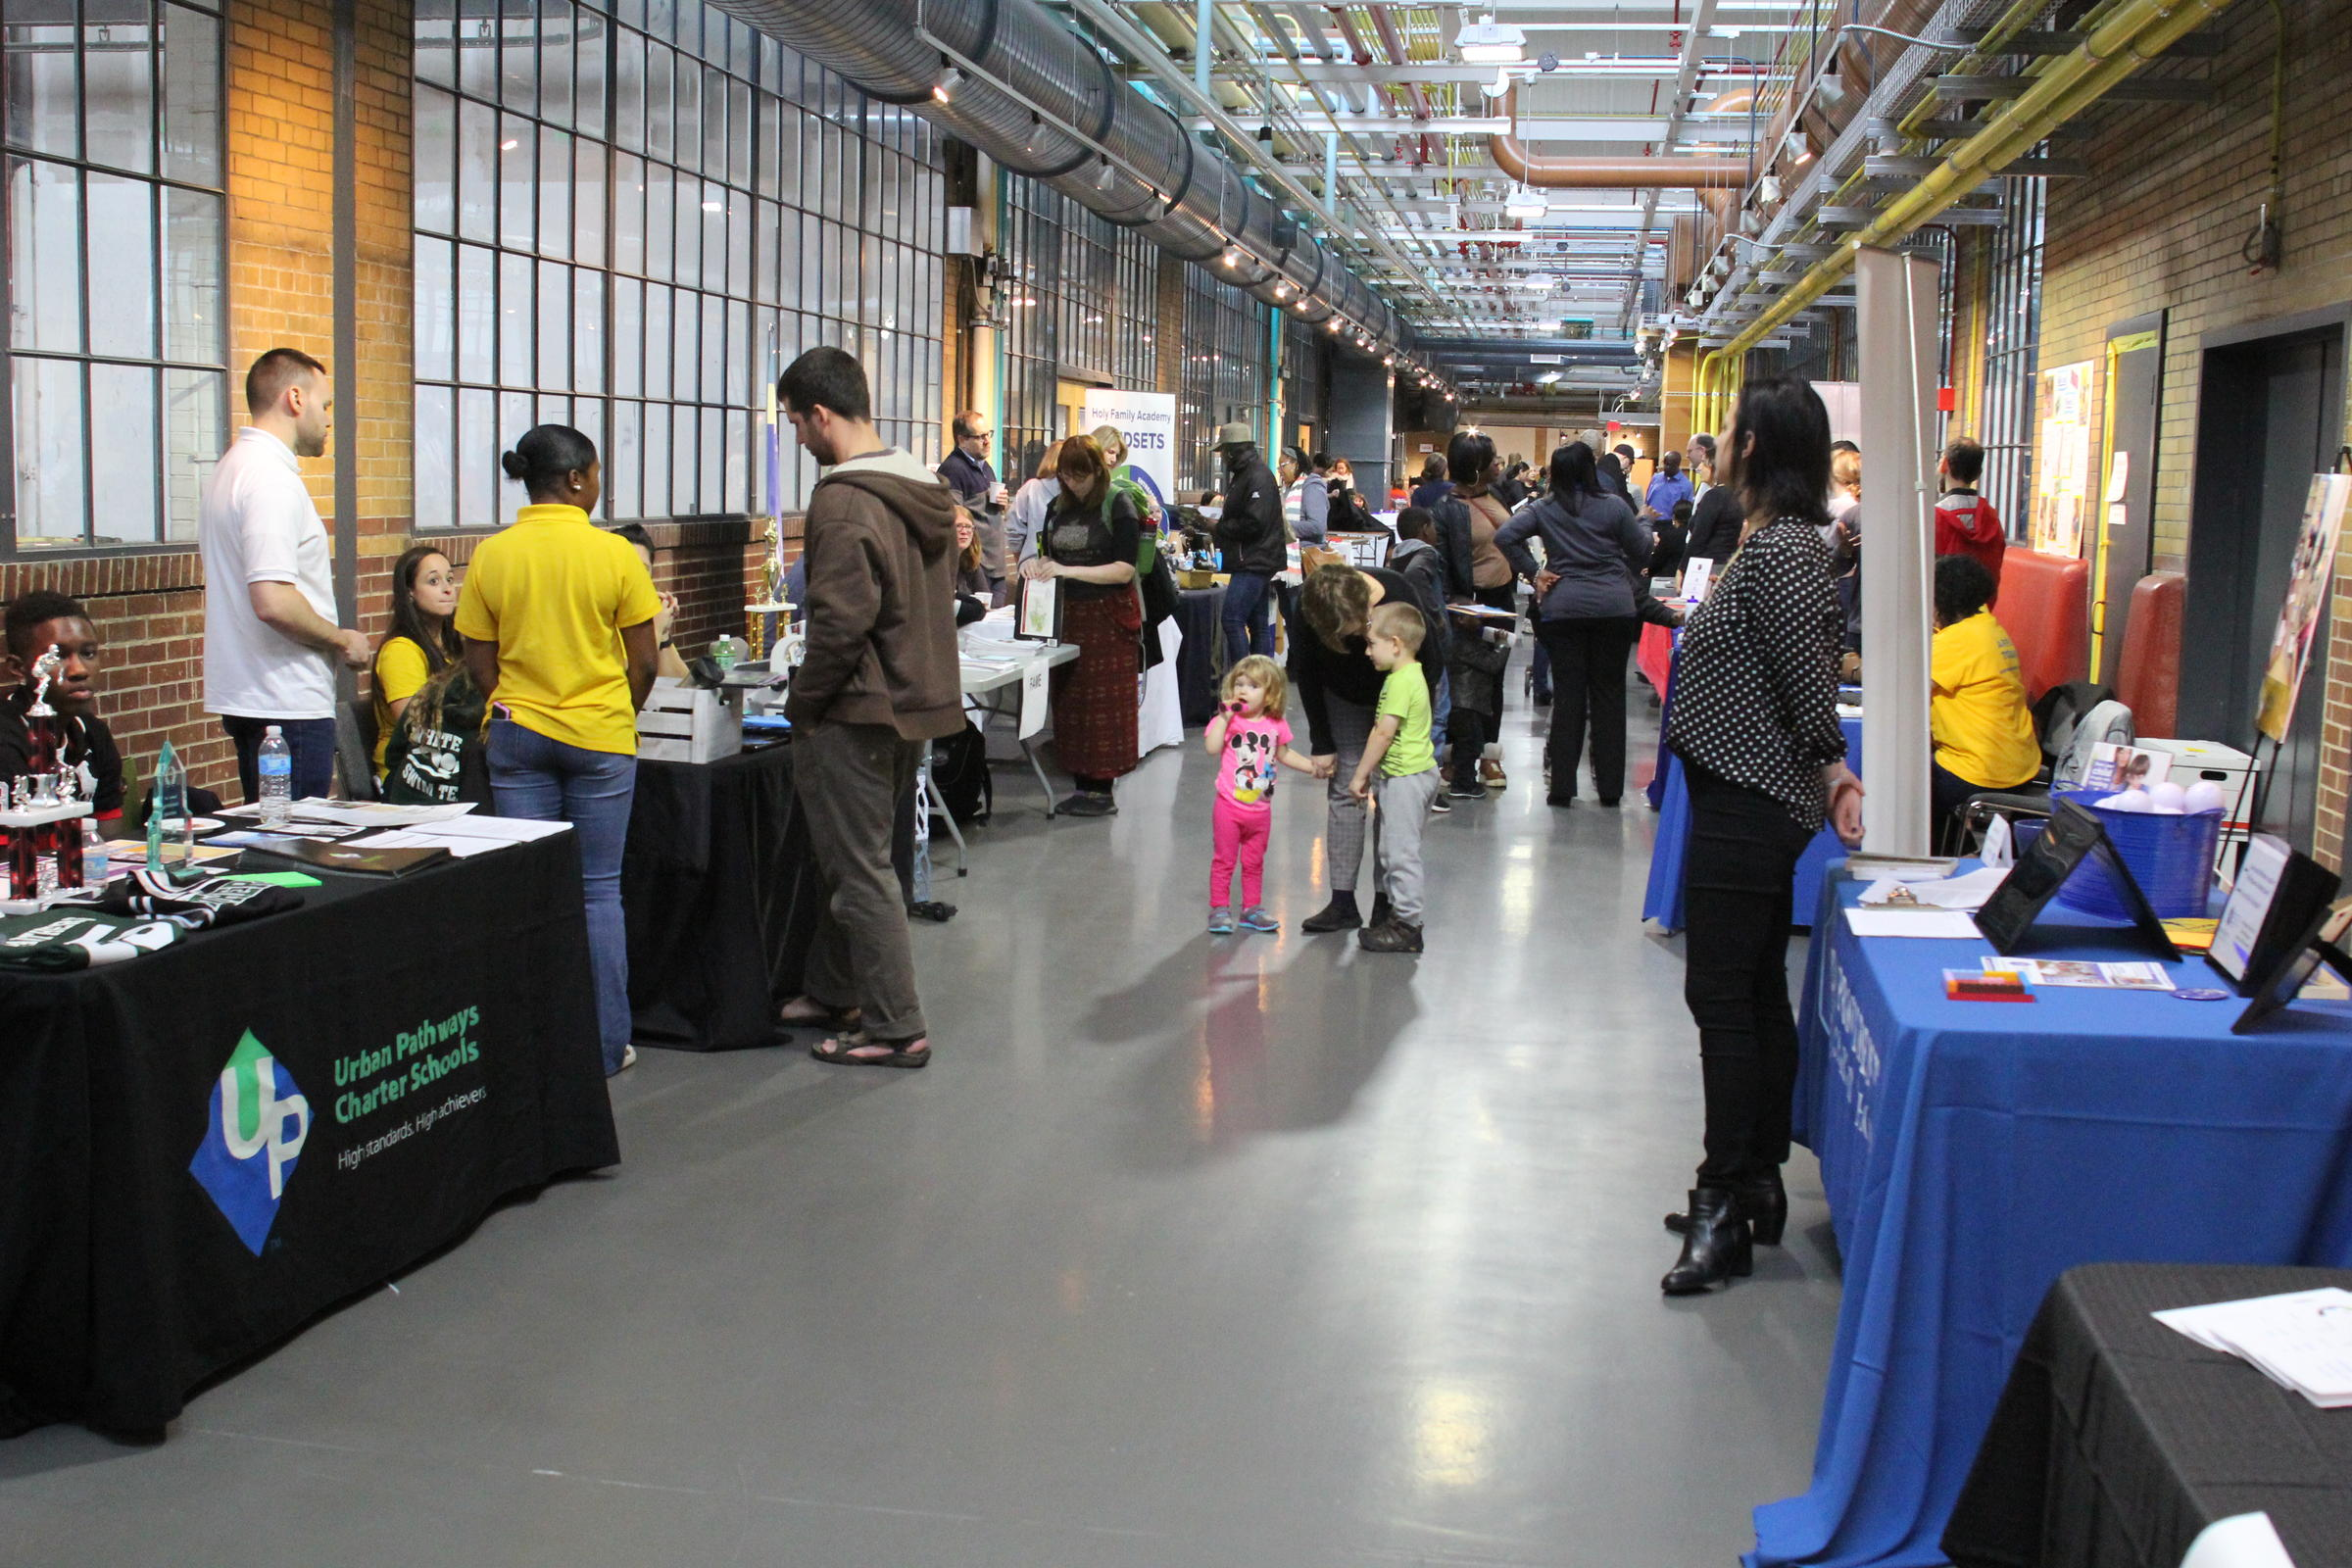 school choice fair gives parents options in education though it s school choice fair gives parents options in education though it s not always an easy decision